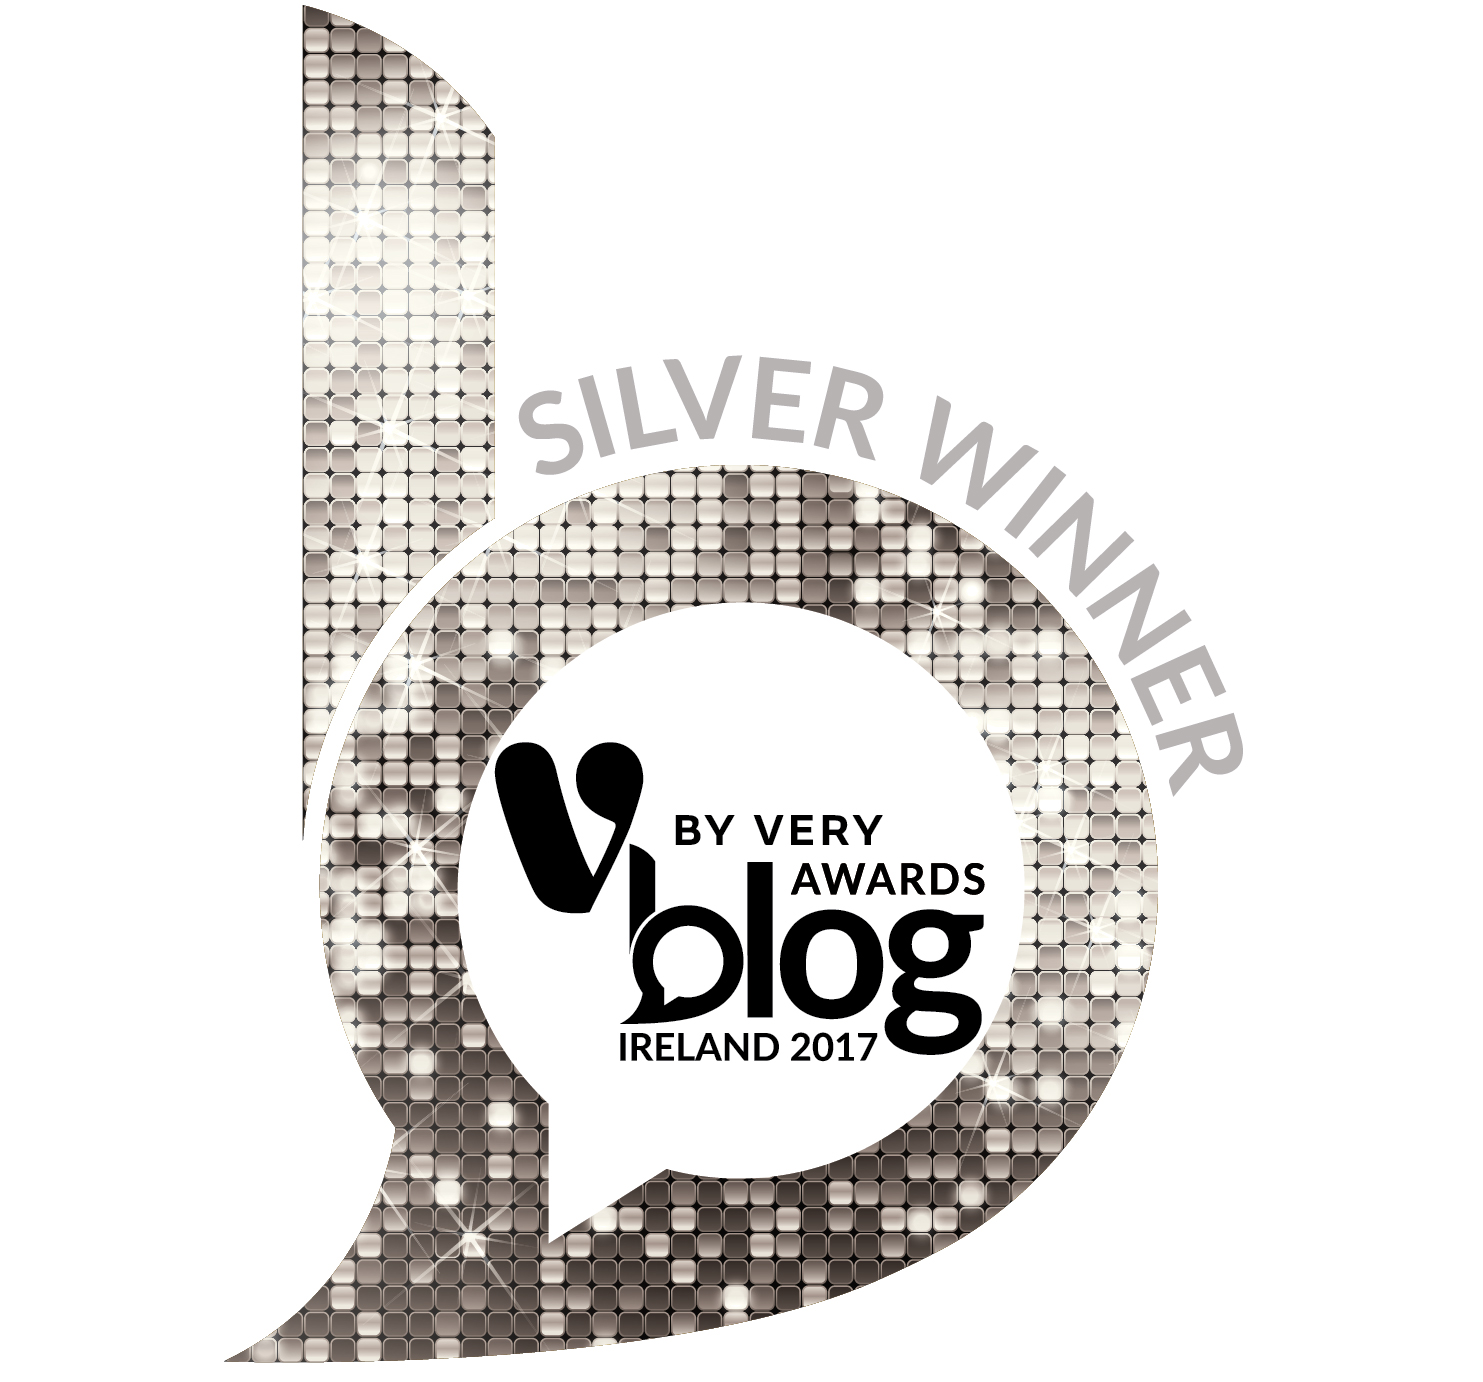 Blog awards Ireland 2017